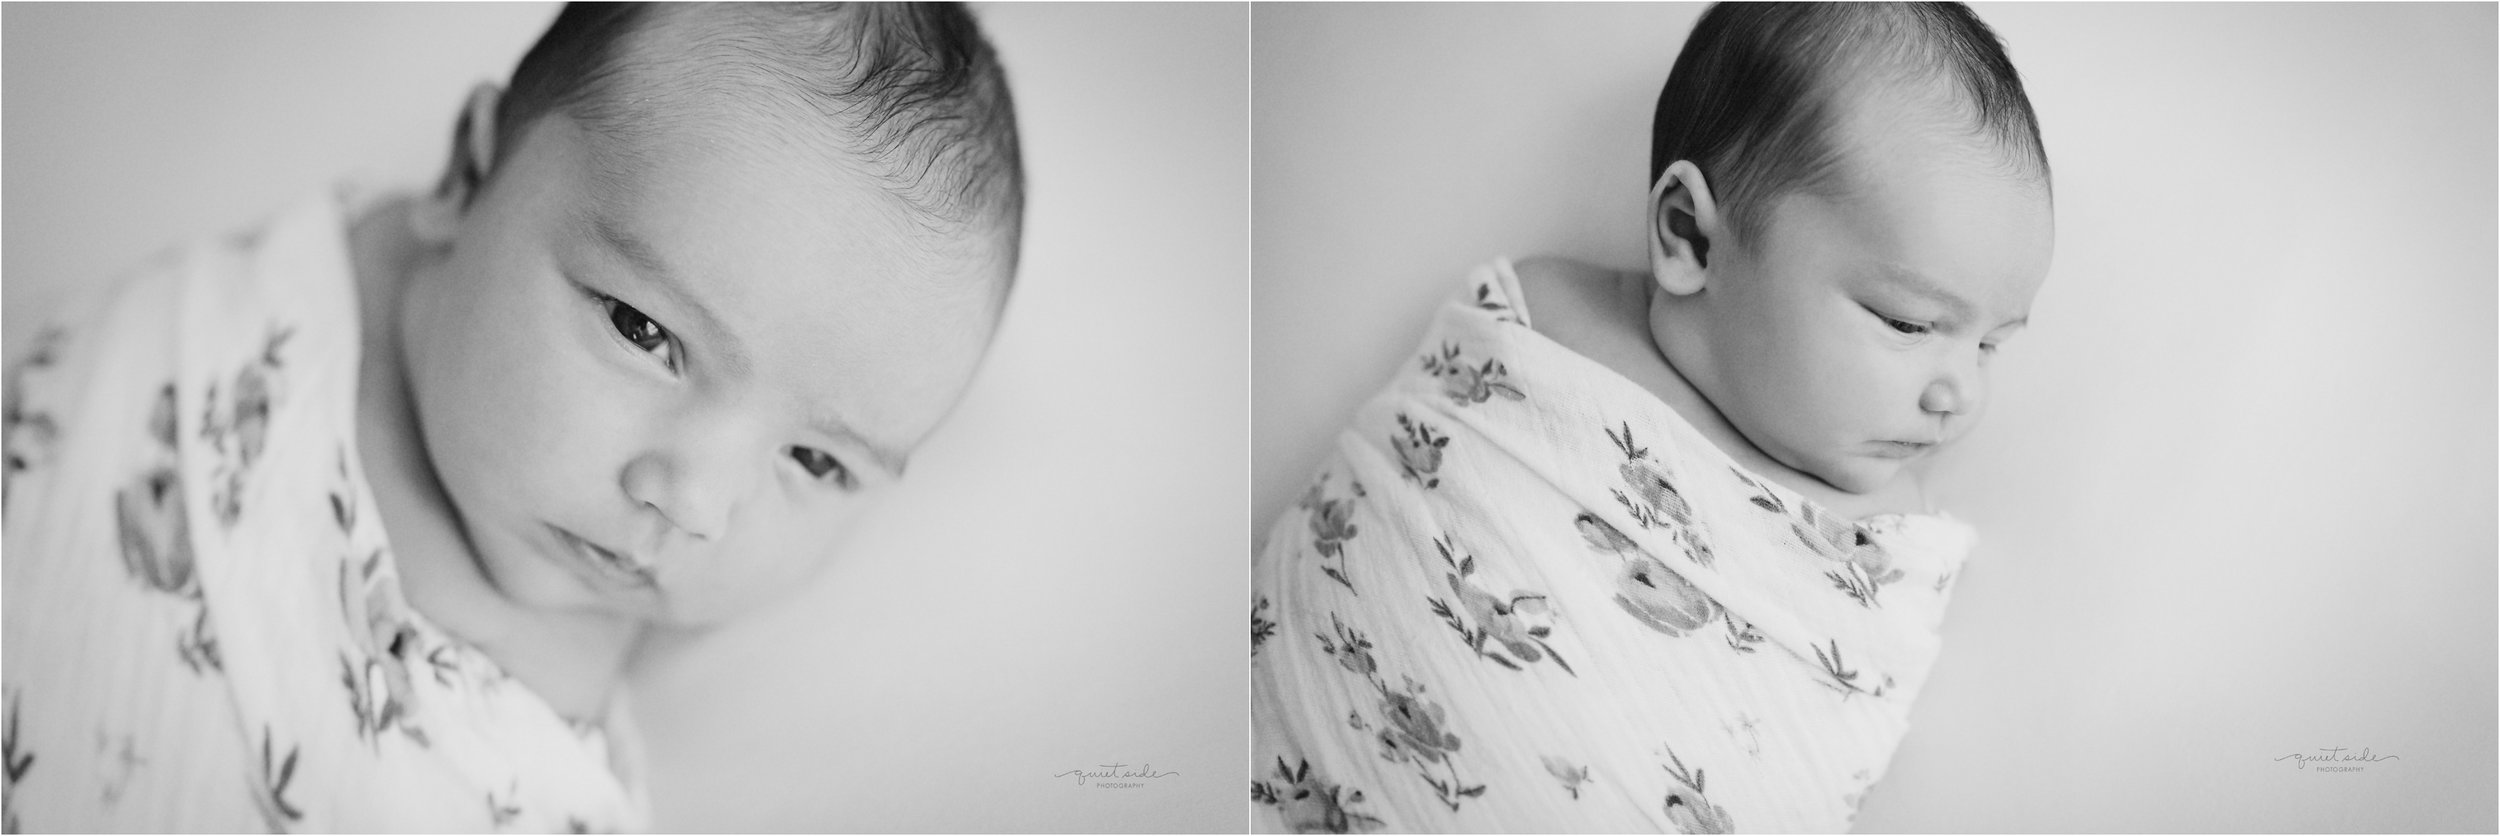 QuietSidePhotography-LoudounCounty-Newborn-Photographer-studio-NorthernVA-2017-09-25_0011.jpg